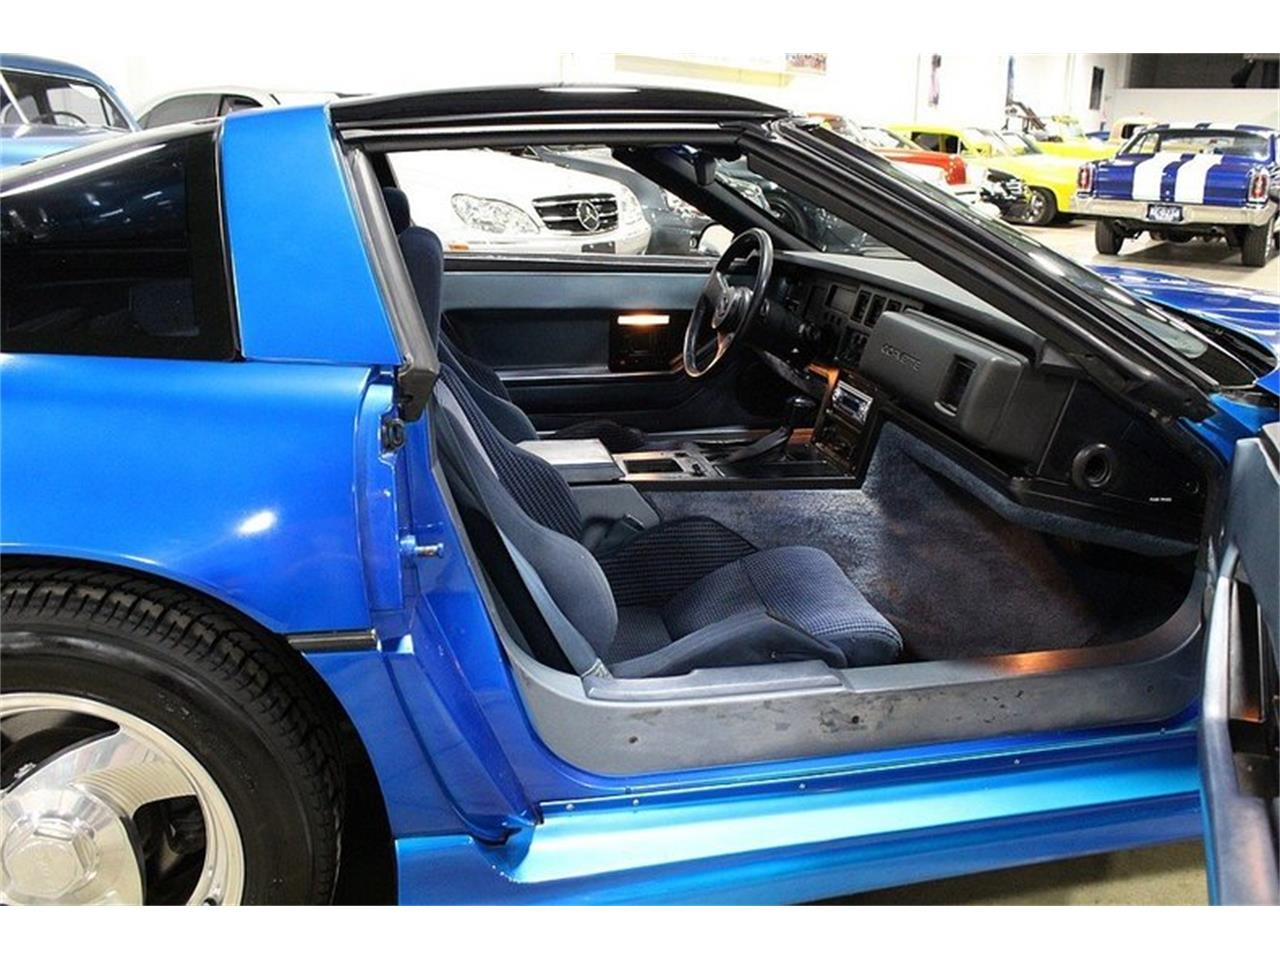 Large Picture of '85 Chevrolet Corvette located in Michigan - $9,900.00 Offered by GR Auto Gallery - LBV1